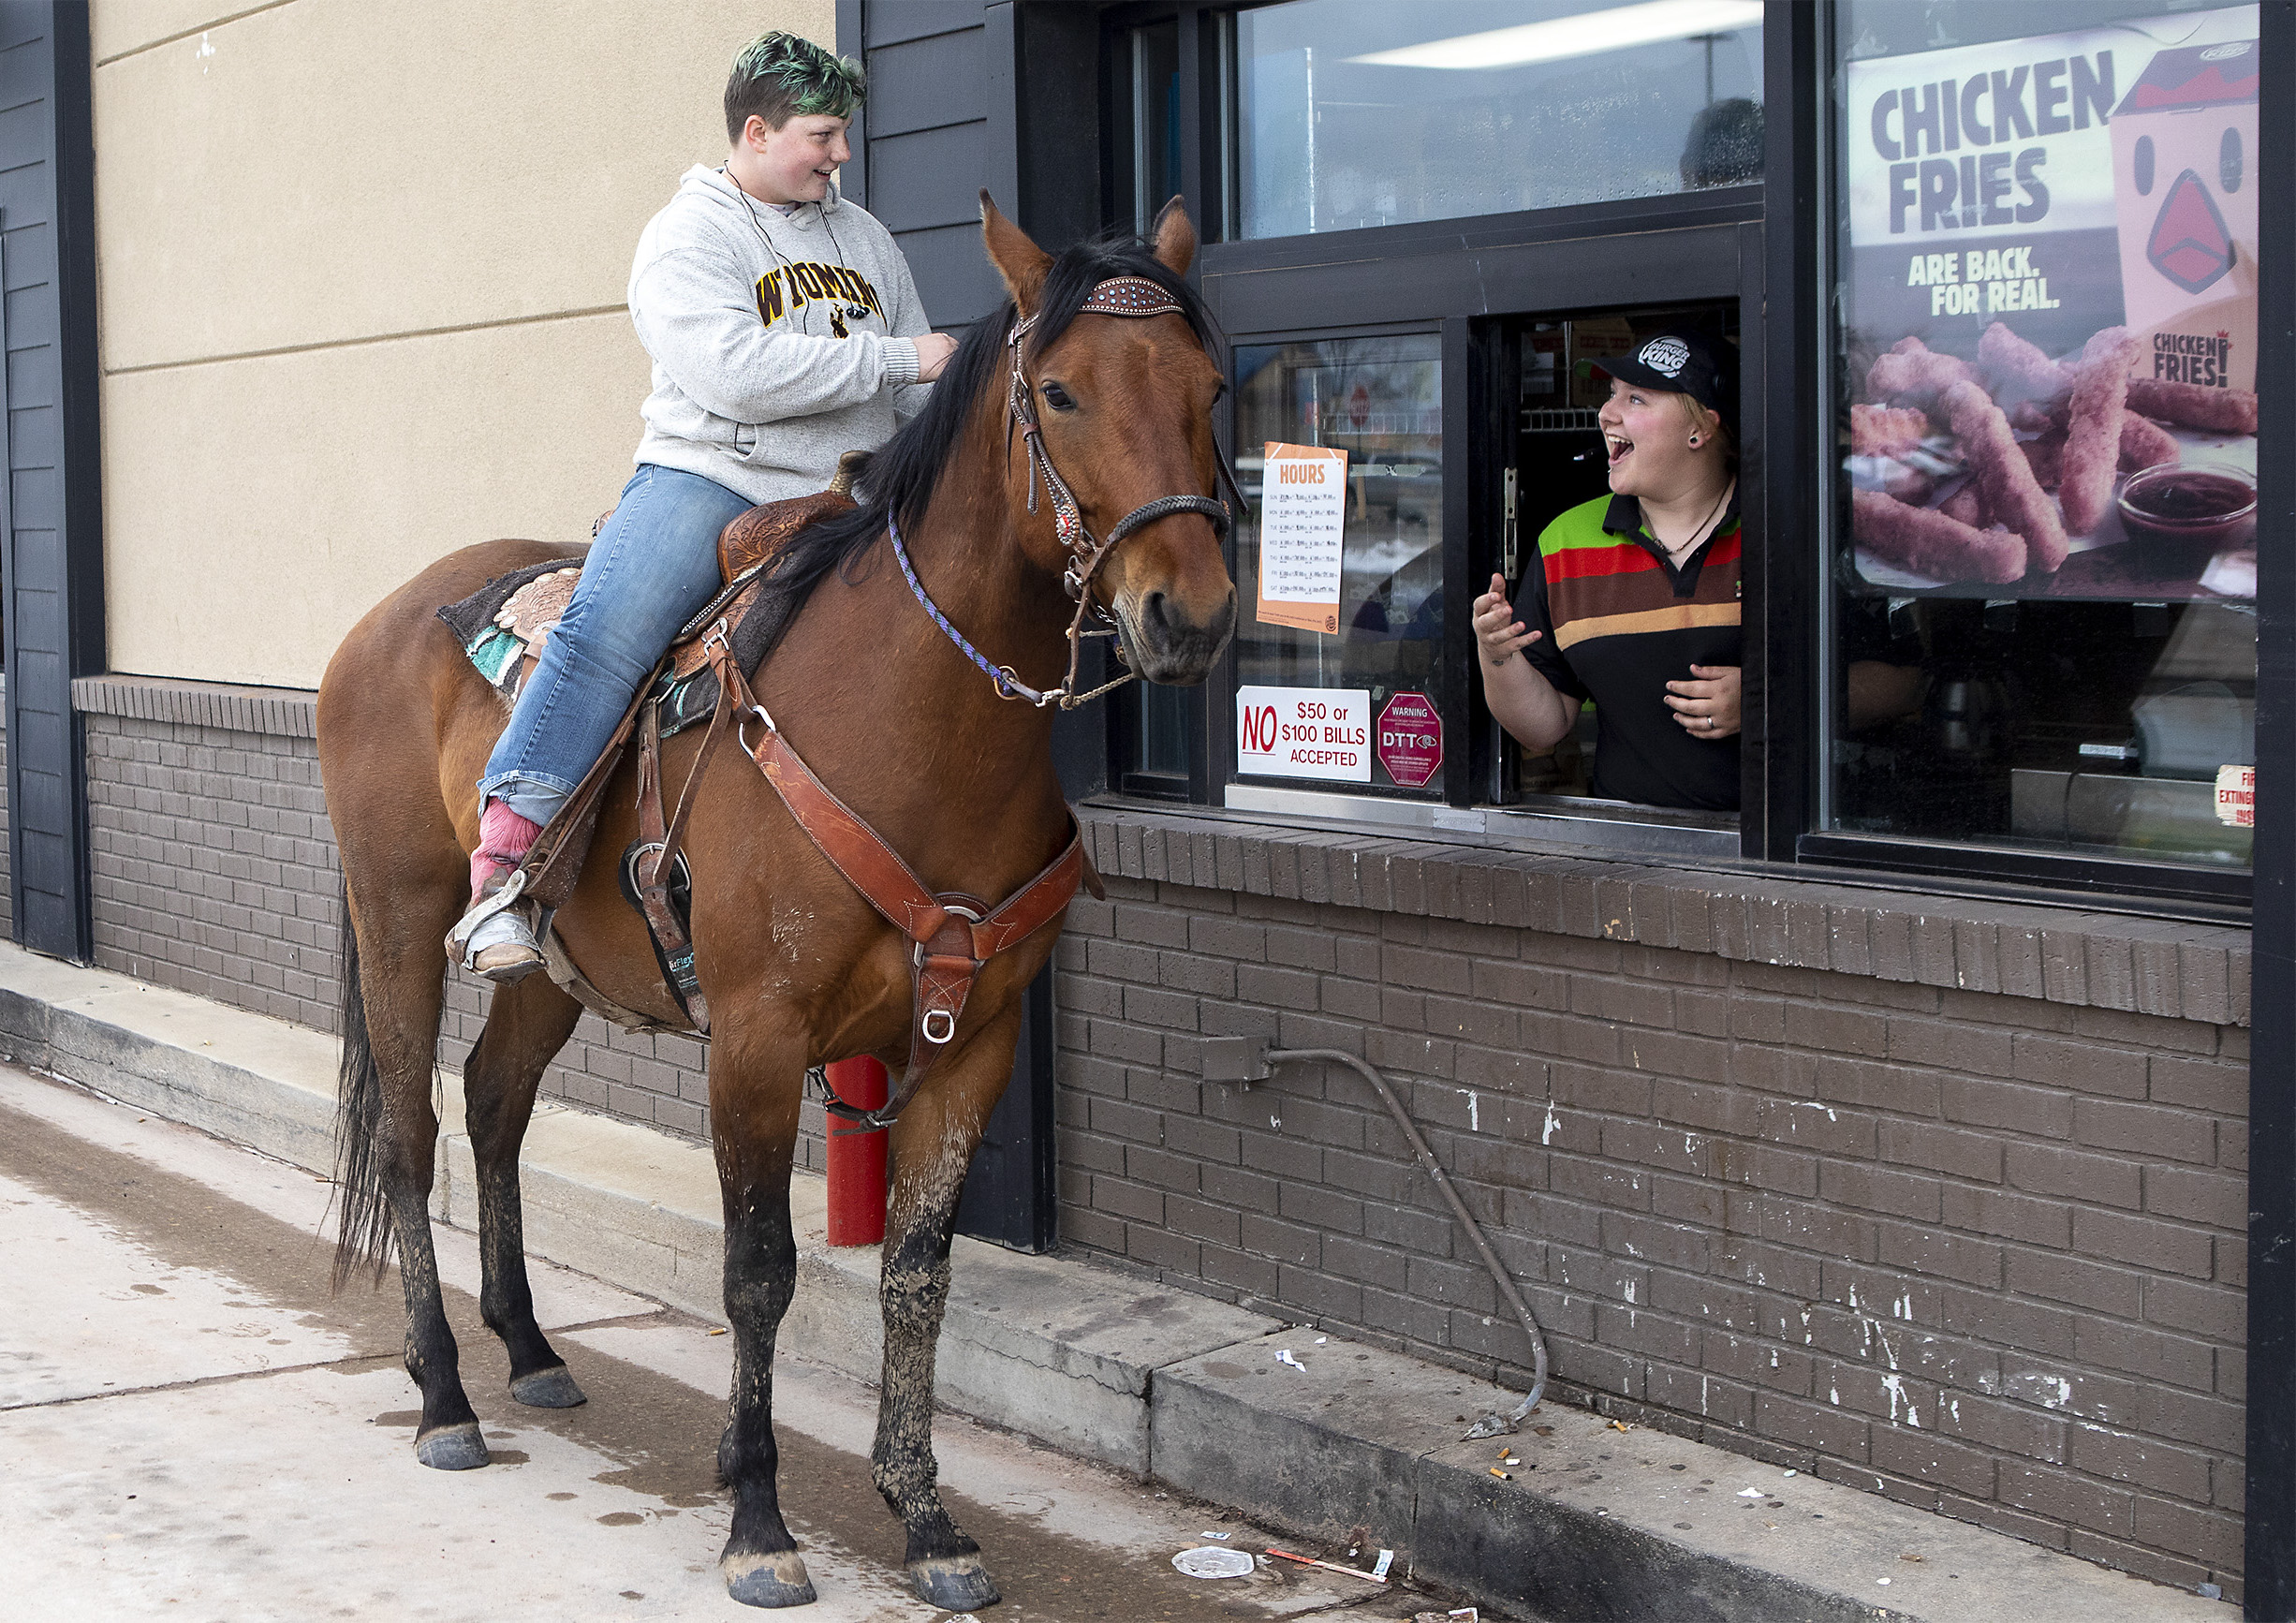 Kristie Laatsch reacts as Dana Blaszkowski, 17, rides her 5-year-old horse Ike up to the Burger King drive-thru window on Thursday afternoon. Blaszkowski decided to take a more rural method of transportation from her home in Rozet to class at Thunder Basin High School. After an unsuccessful attempt to order from the McDonald's drive-thru earlier, Blaszkowski found success at Burger King and got Ike water and some applesauce for being good. While Ike decided the applesauce wasn't for him, he did enjoy some of the grass on the side of the road.